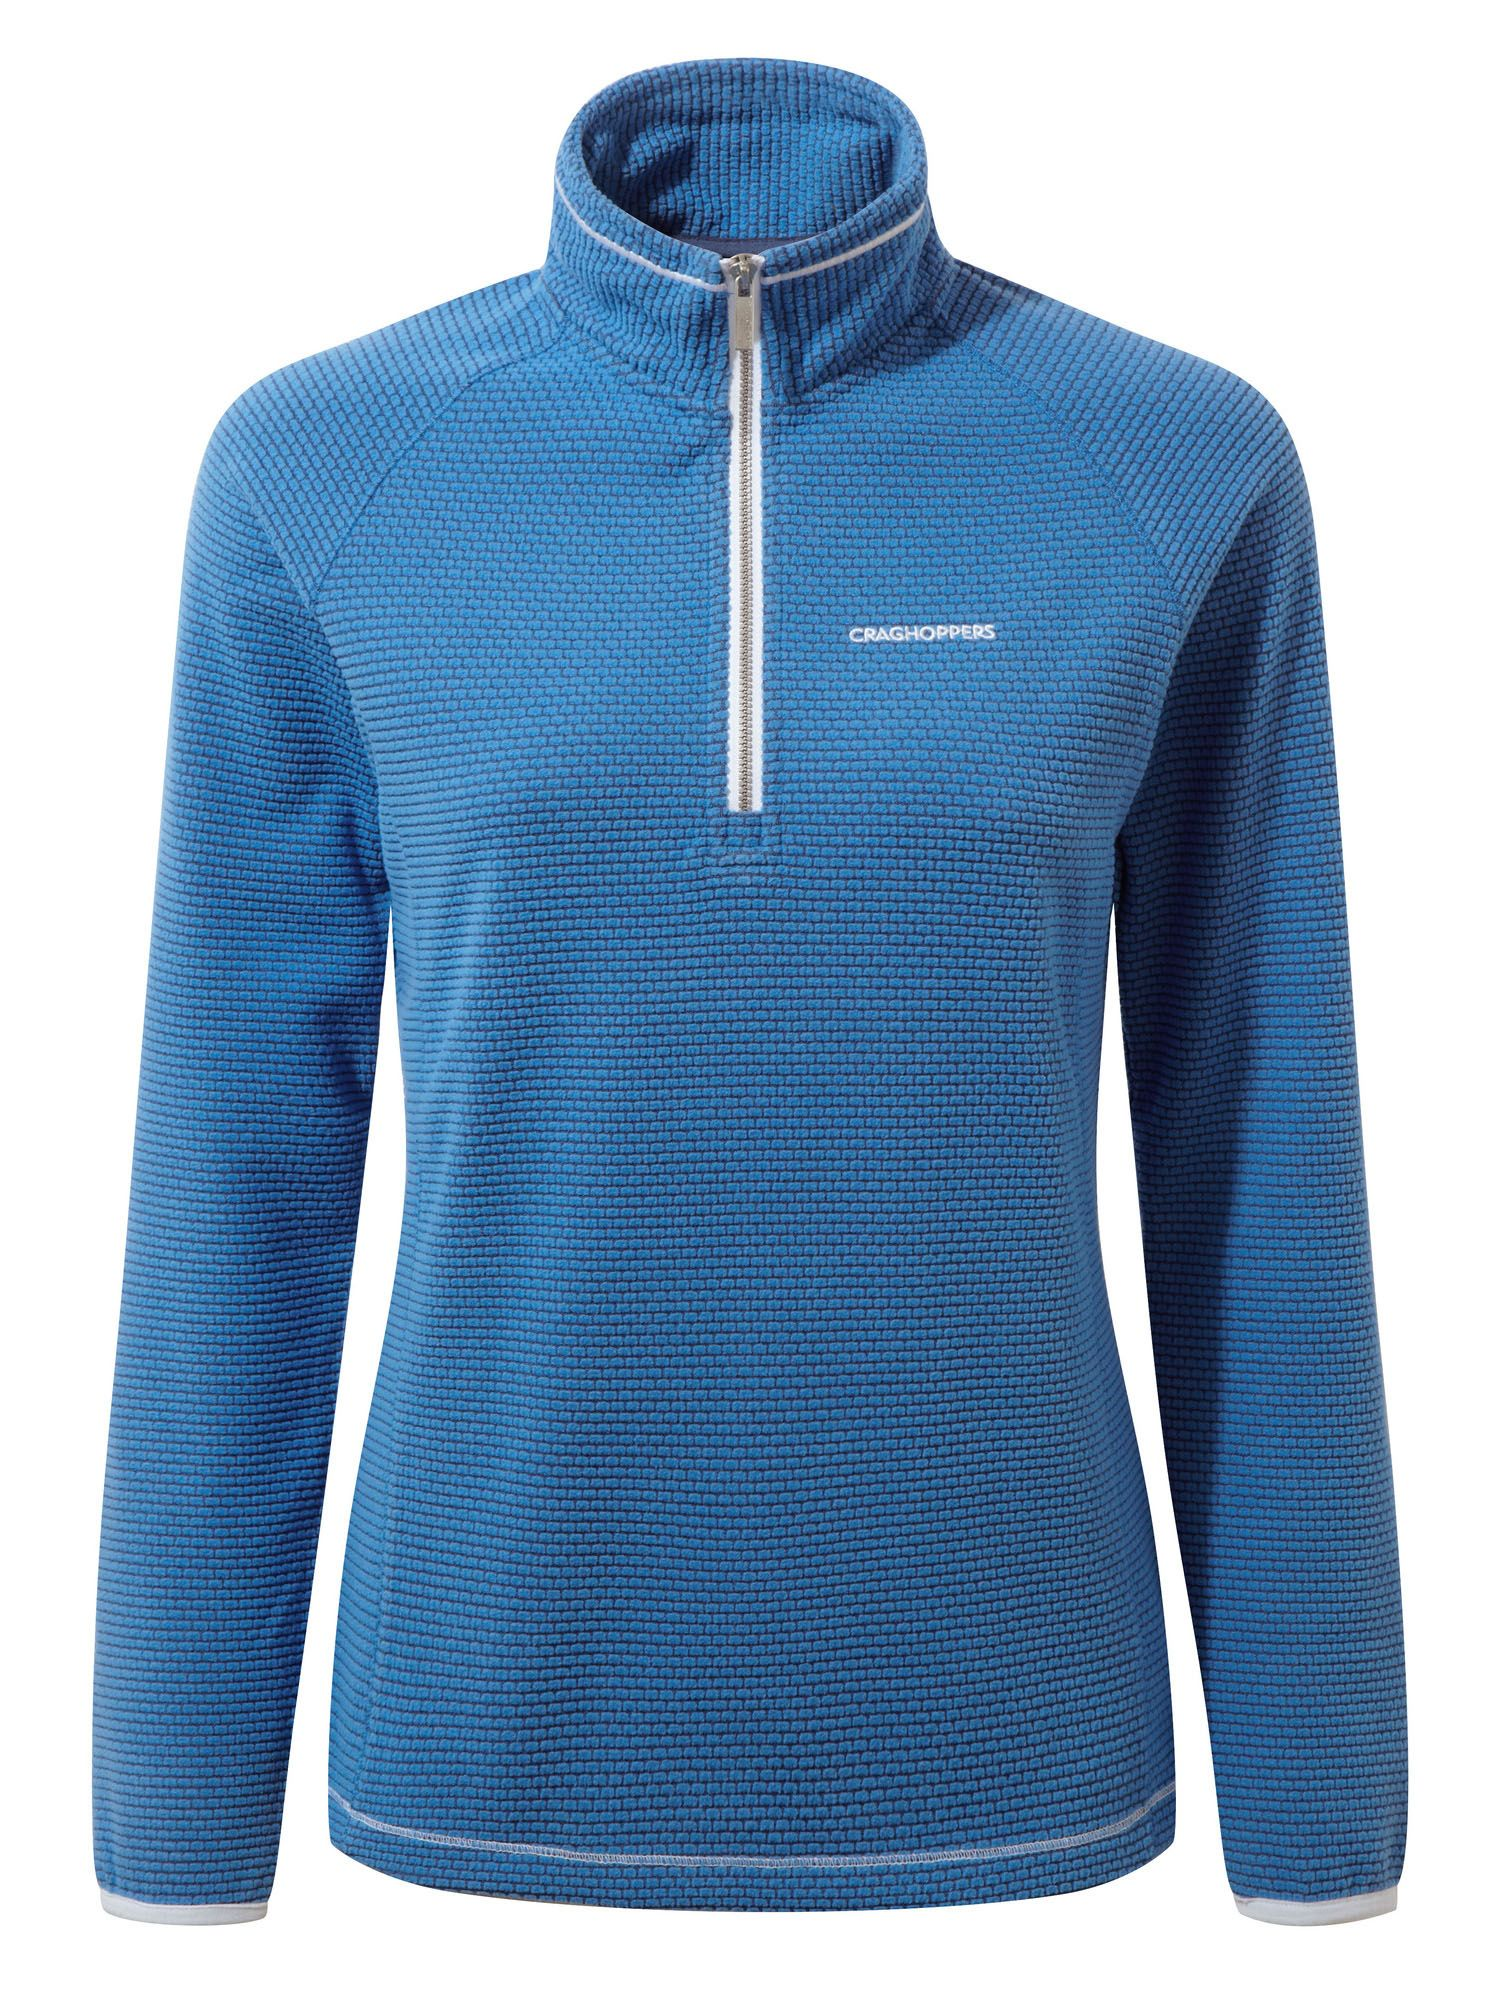 Craghoppers Hazelton Half Zip Fleece, Blue